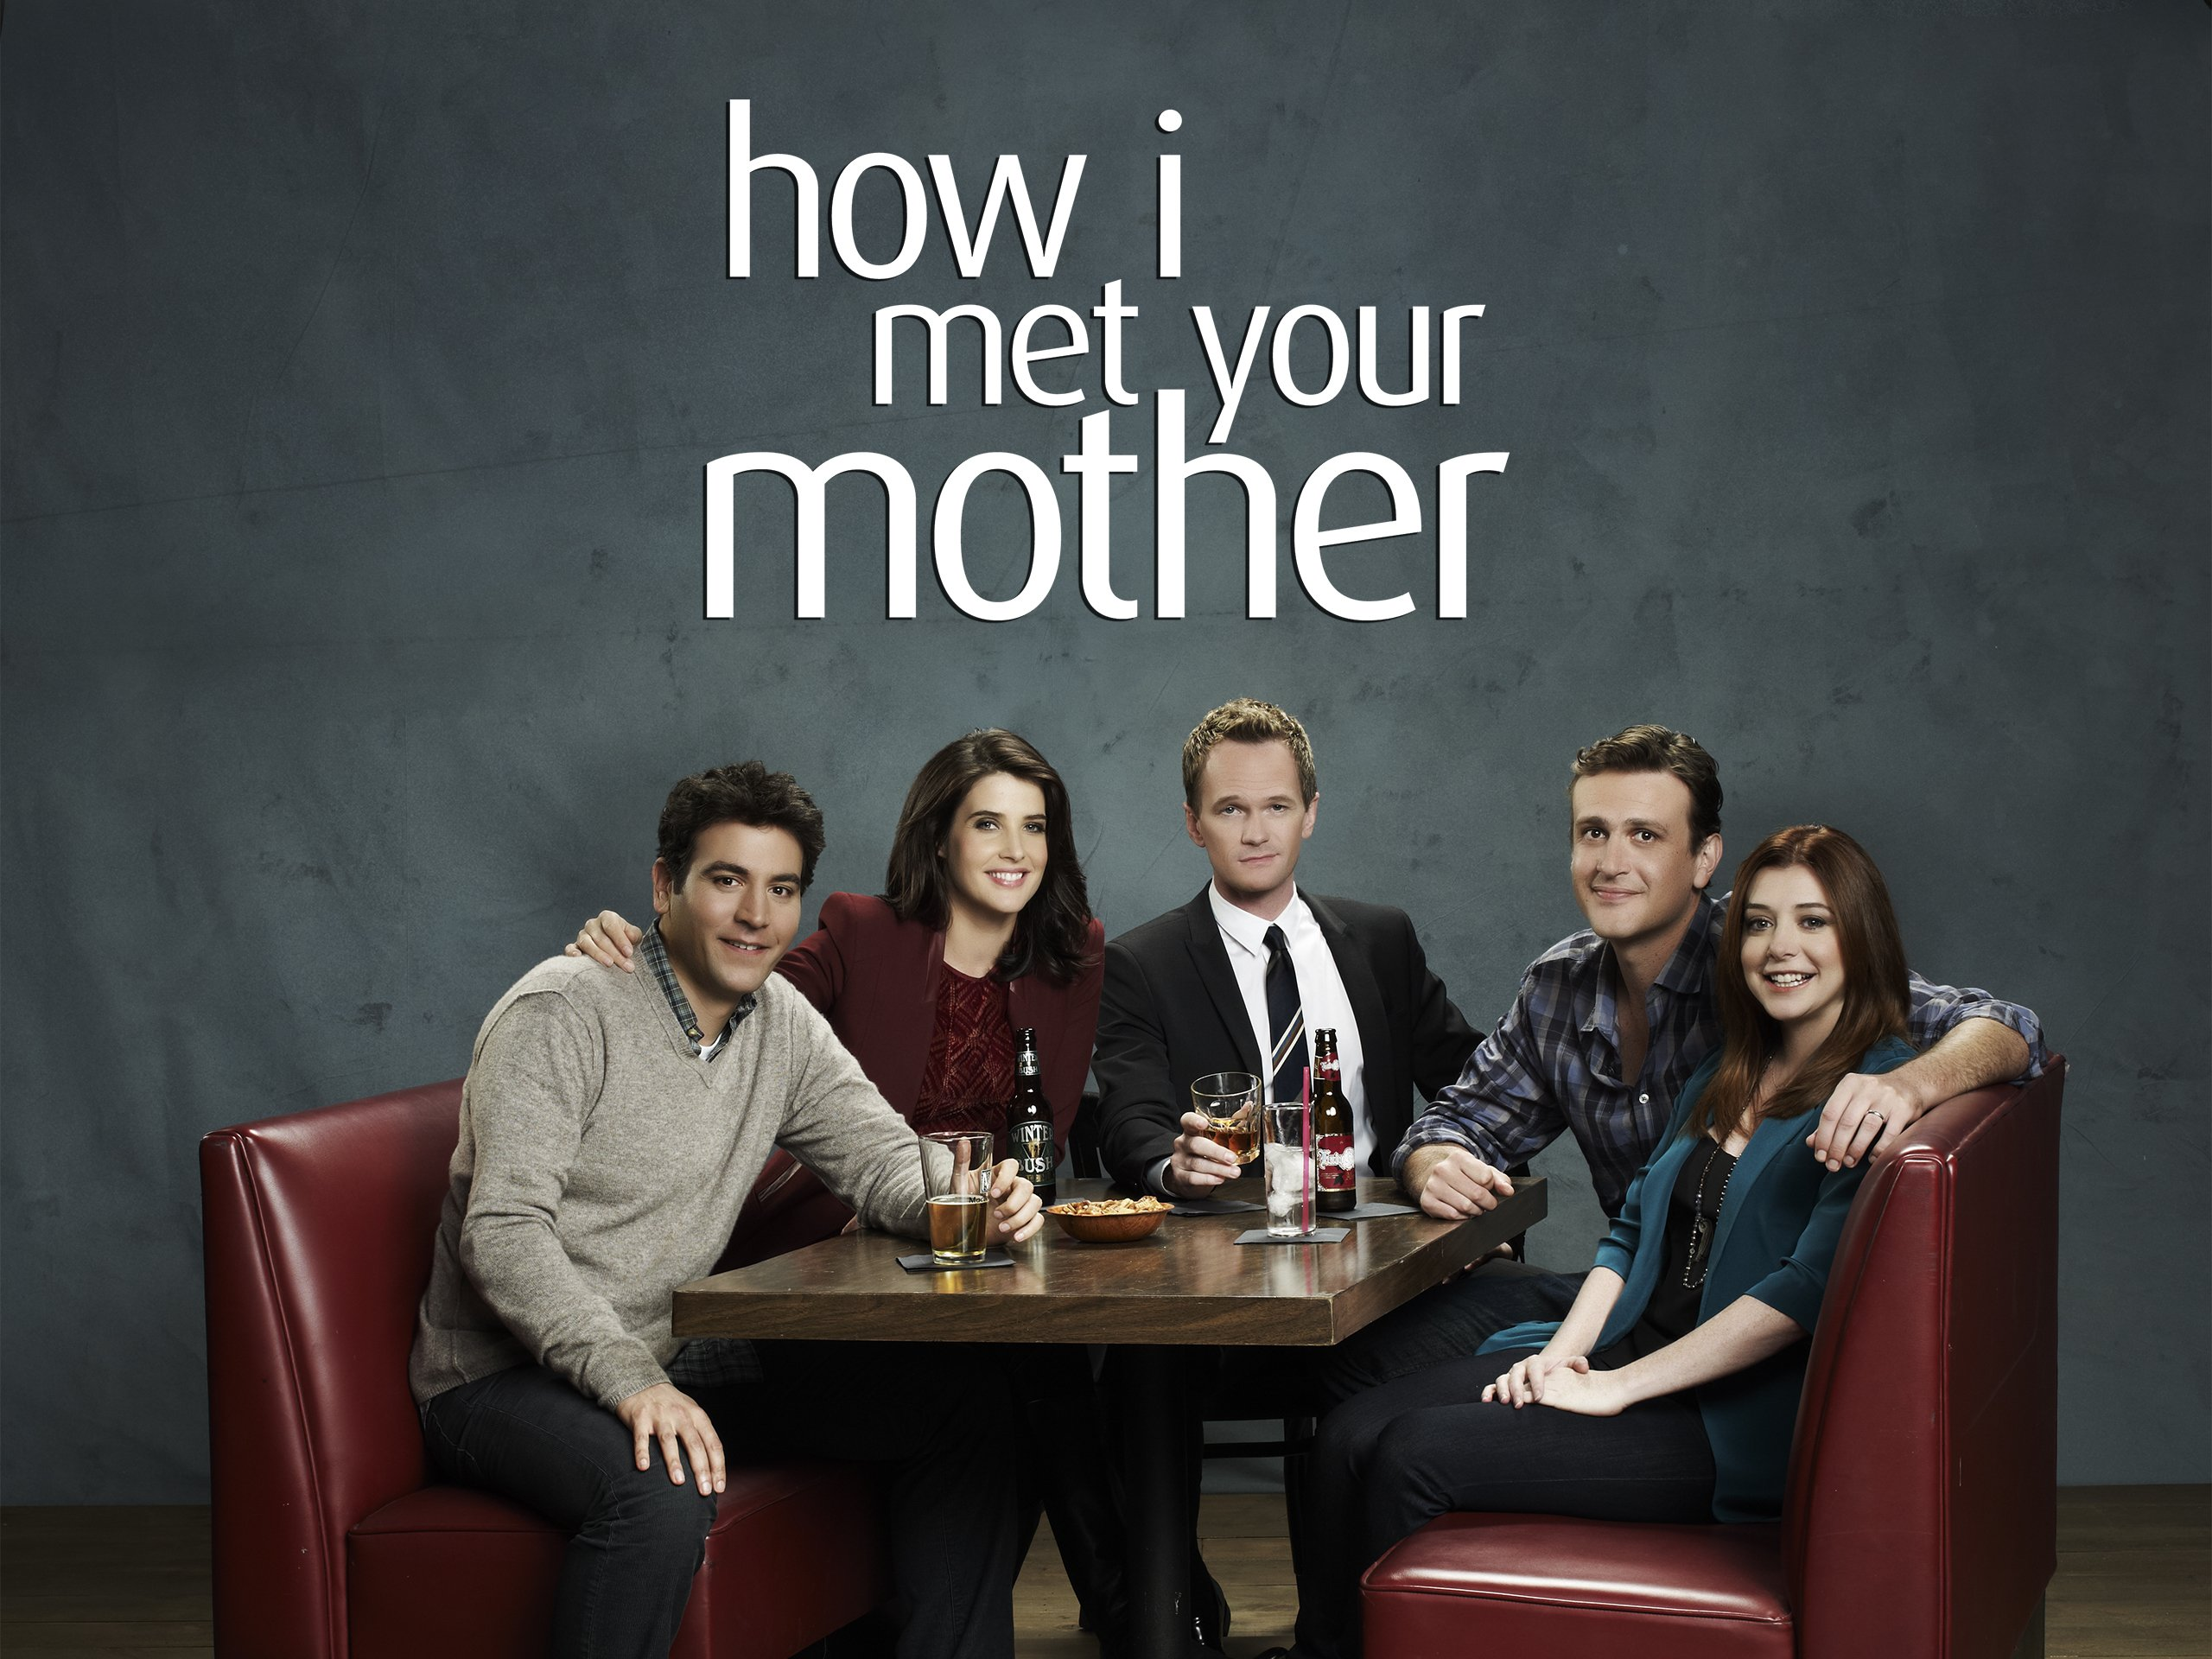 Amazon.com: Watch How I Met Your Mother Season 1 | Prime Video